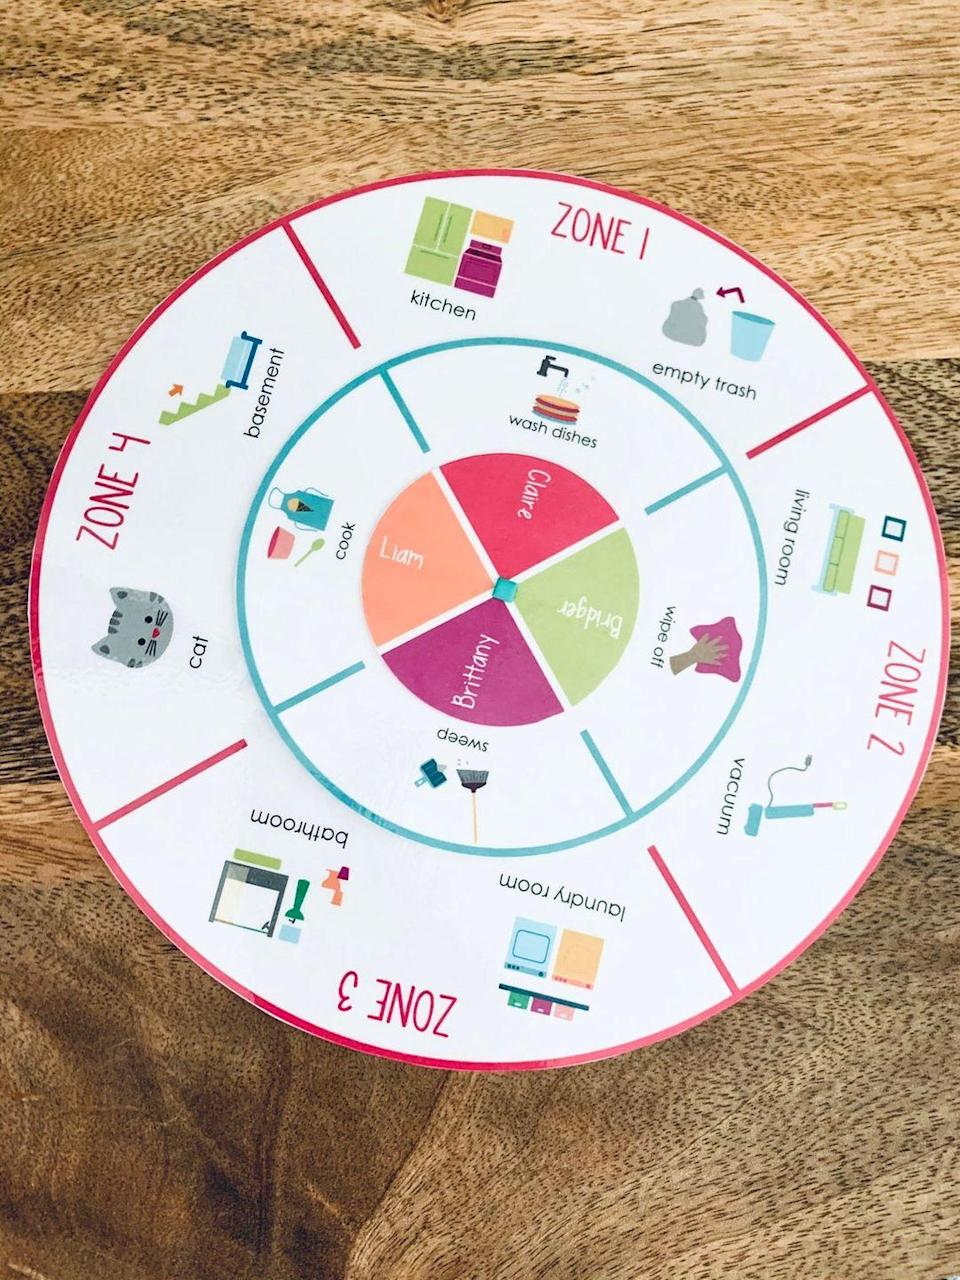 """<p>Turn chores into a game-show like experience with this printable lazy Susan-style wheel o' chores.</p><p><a href=""""https://go.redirectingat.com?id=74968X1596630&url=https%3A%2F%2Fwww.etsy.com%2Flisting%2F865783559%2Fprintable-family-rotation-wheel-chore&sref=https%3A%2F%2Fwww.womansday.com%2Fhome%2Fcrafts-projects%2Fg2597%2Fchore-charts-for-kids%2F"""" rel=""""nofollow noopener"""" target=""""_blank"""" data-ylk=""""slk:Get the printable at Etsy."""" class=""""link rapid-noclick-resp""""><strong><em>Get the printable at Etsy.</em></strong></a></p>"""